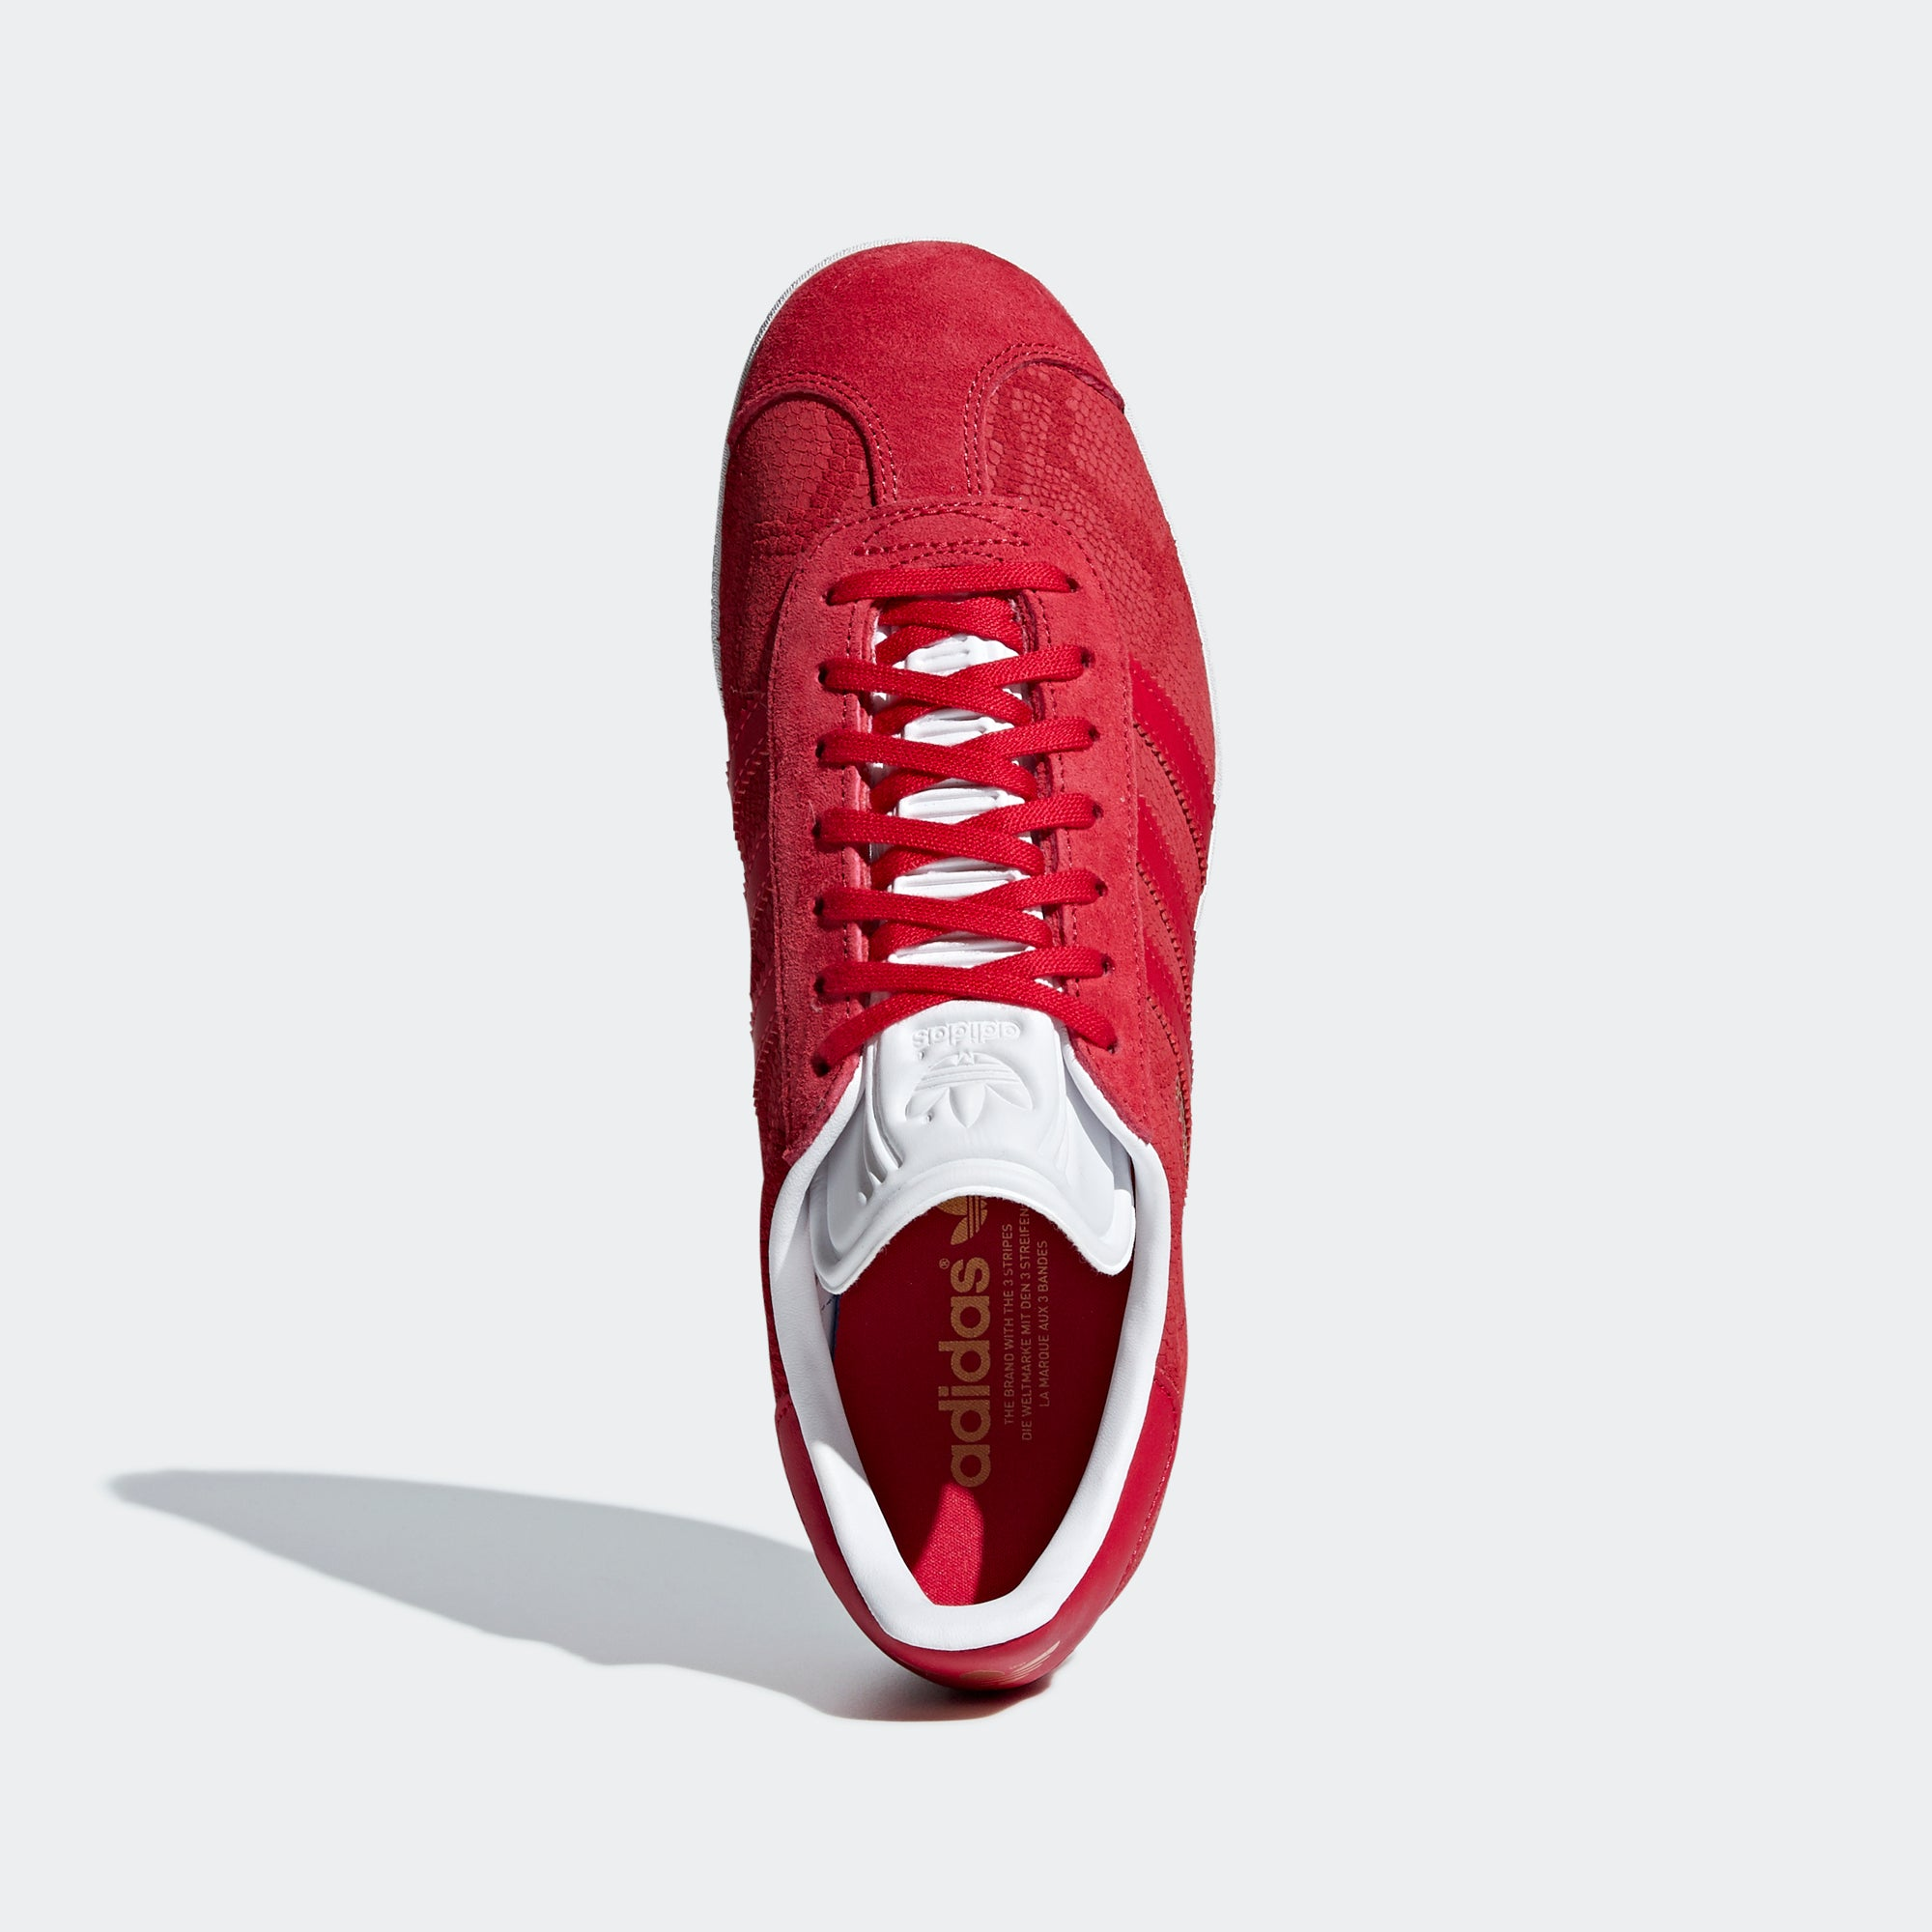 0a19bdd50784 Women s Adidas Originals Gazelle Shoes Bold Red B41656